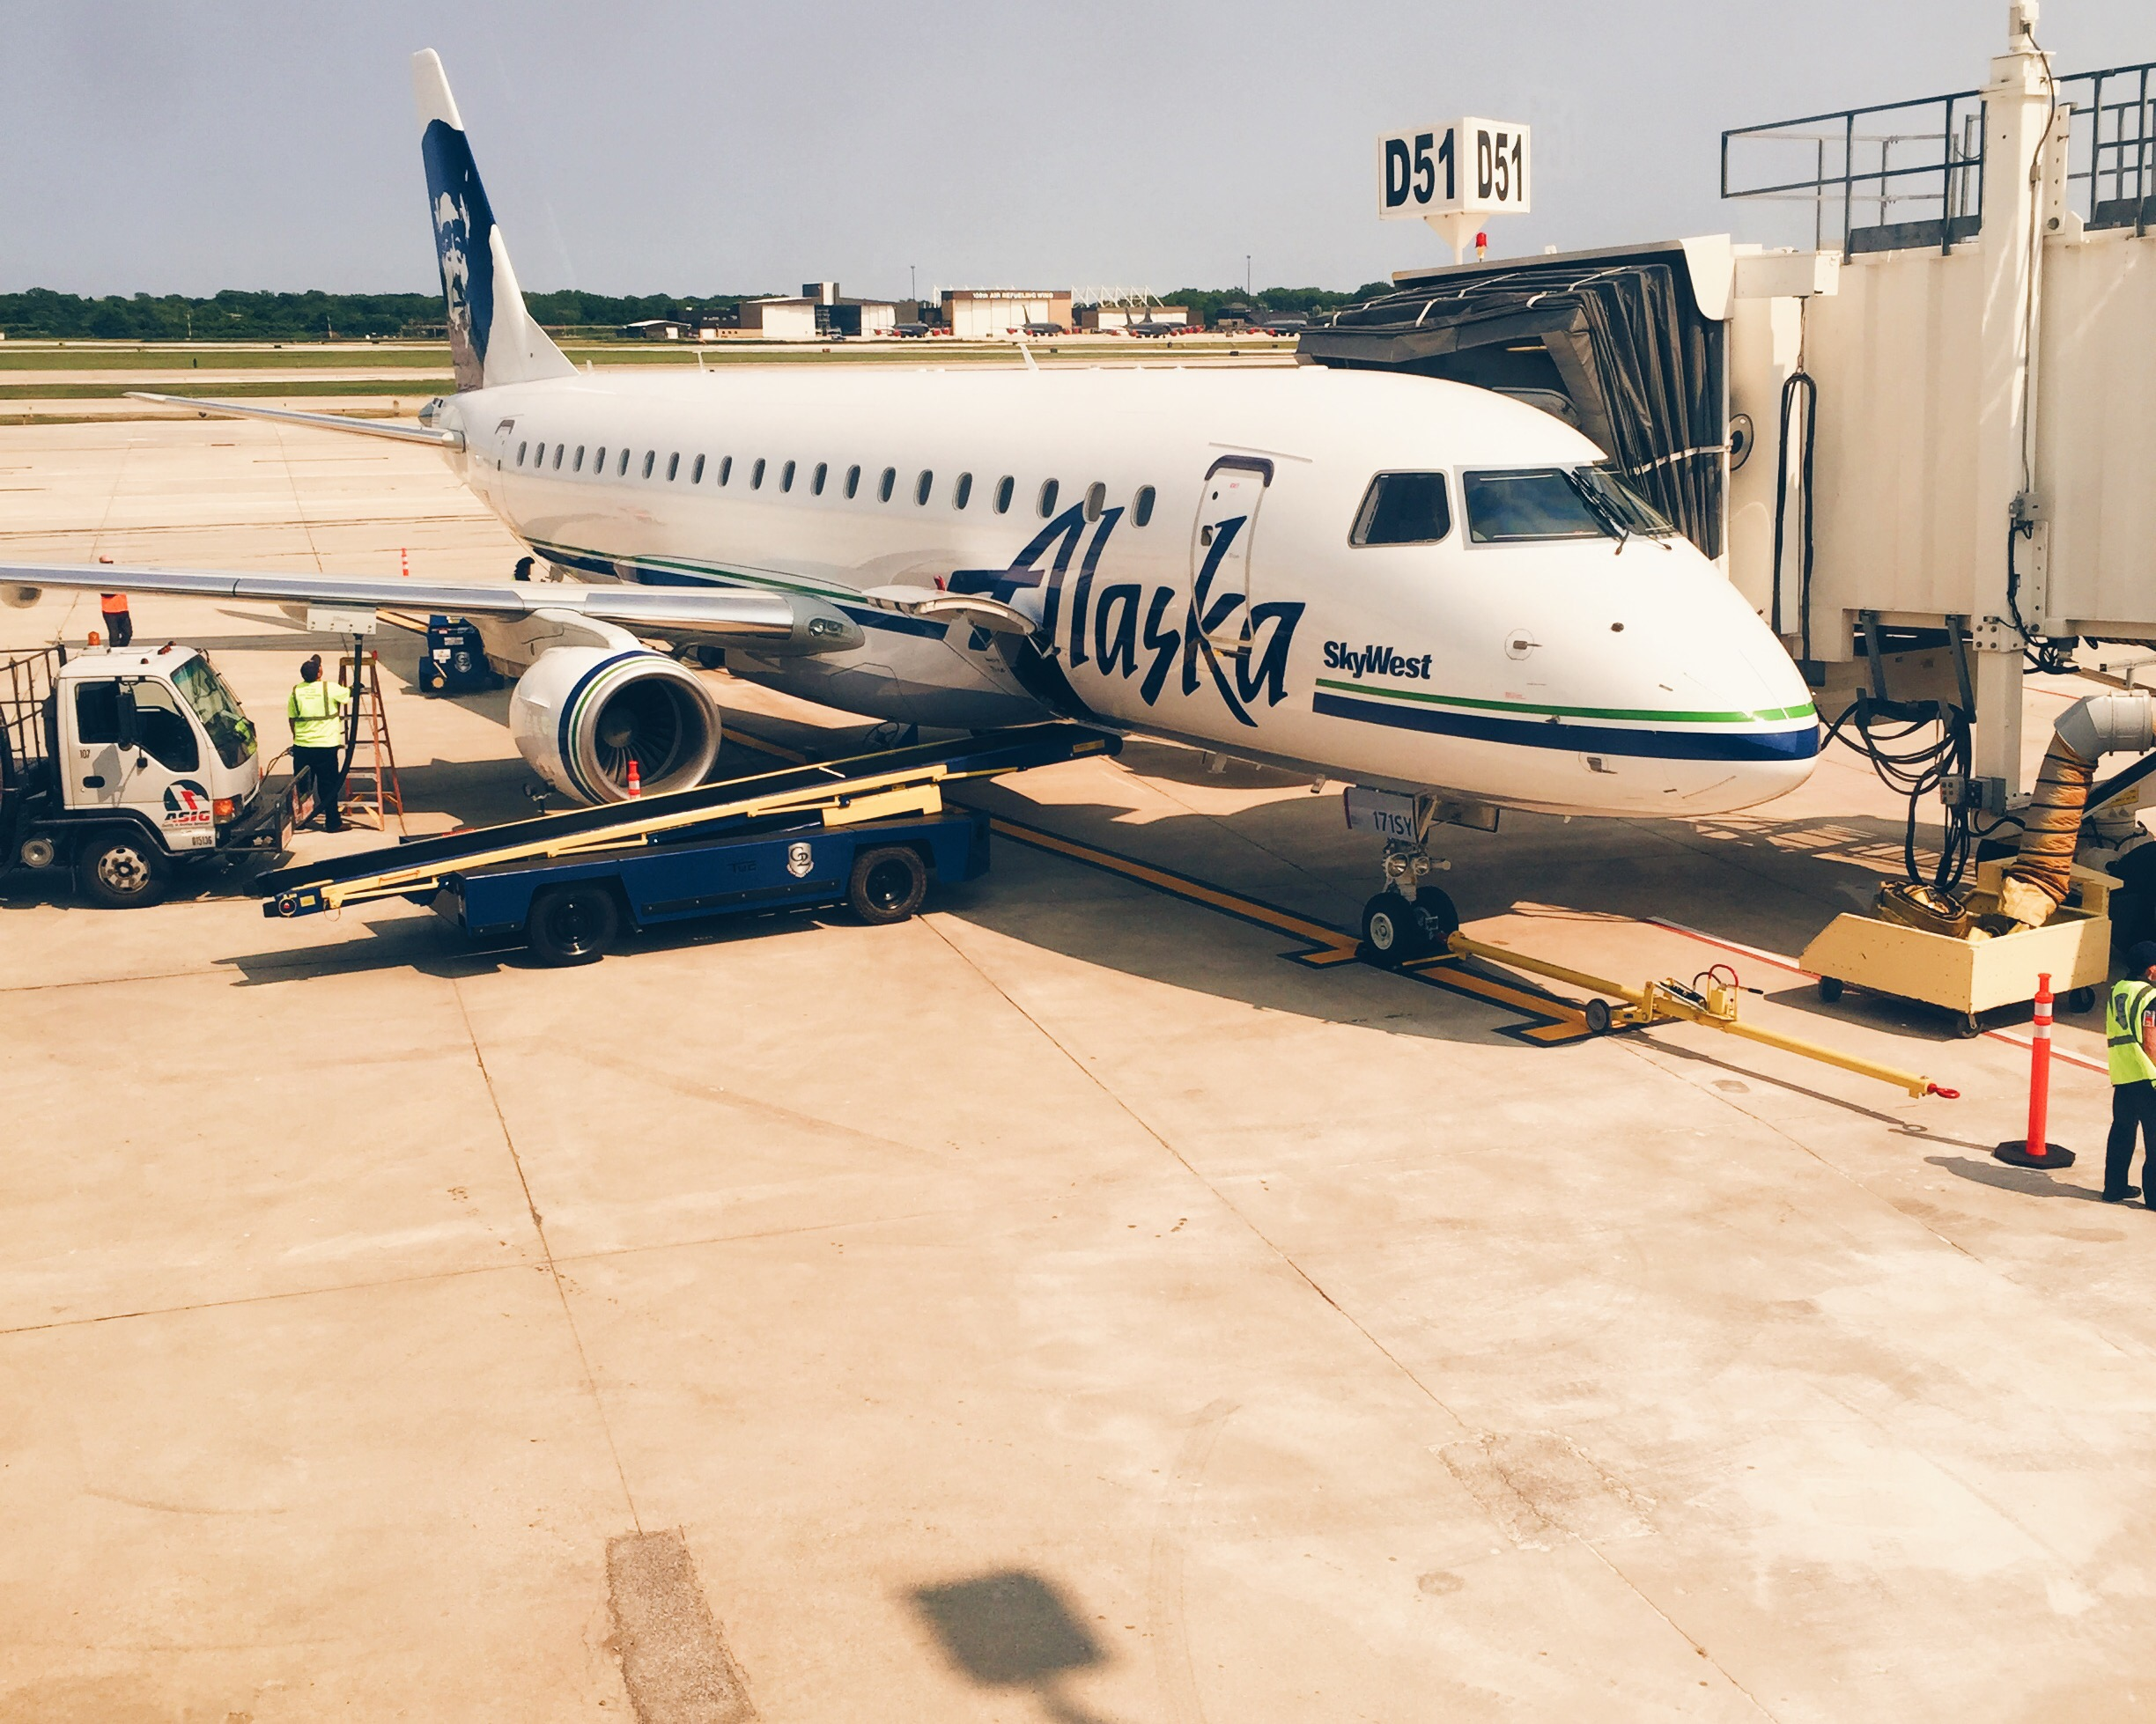 Paxex stephan segraves badice since then i have not had much of an opportunity to fly on alaska most of trips early in the year were to places they dont fly or where their prices were buycottarizona Choice Image